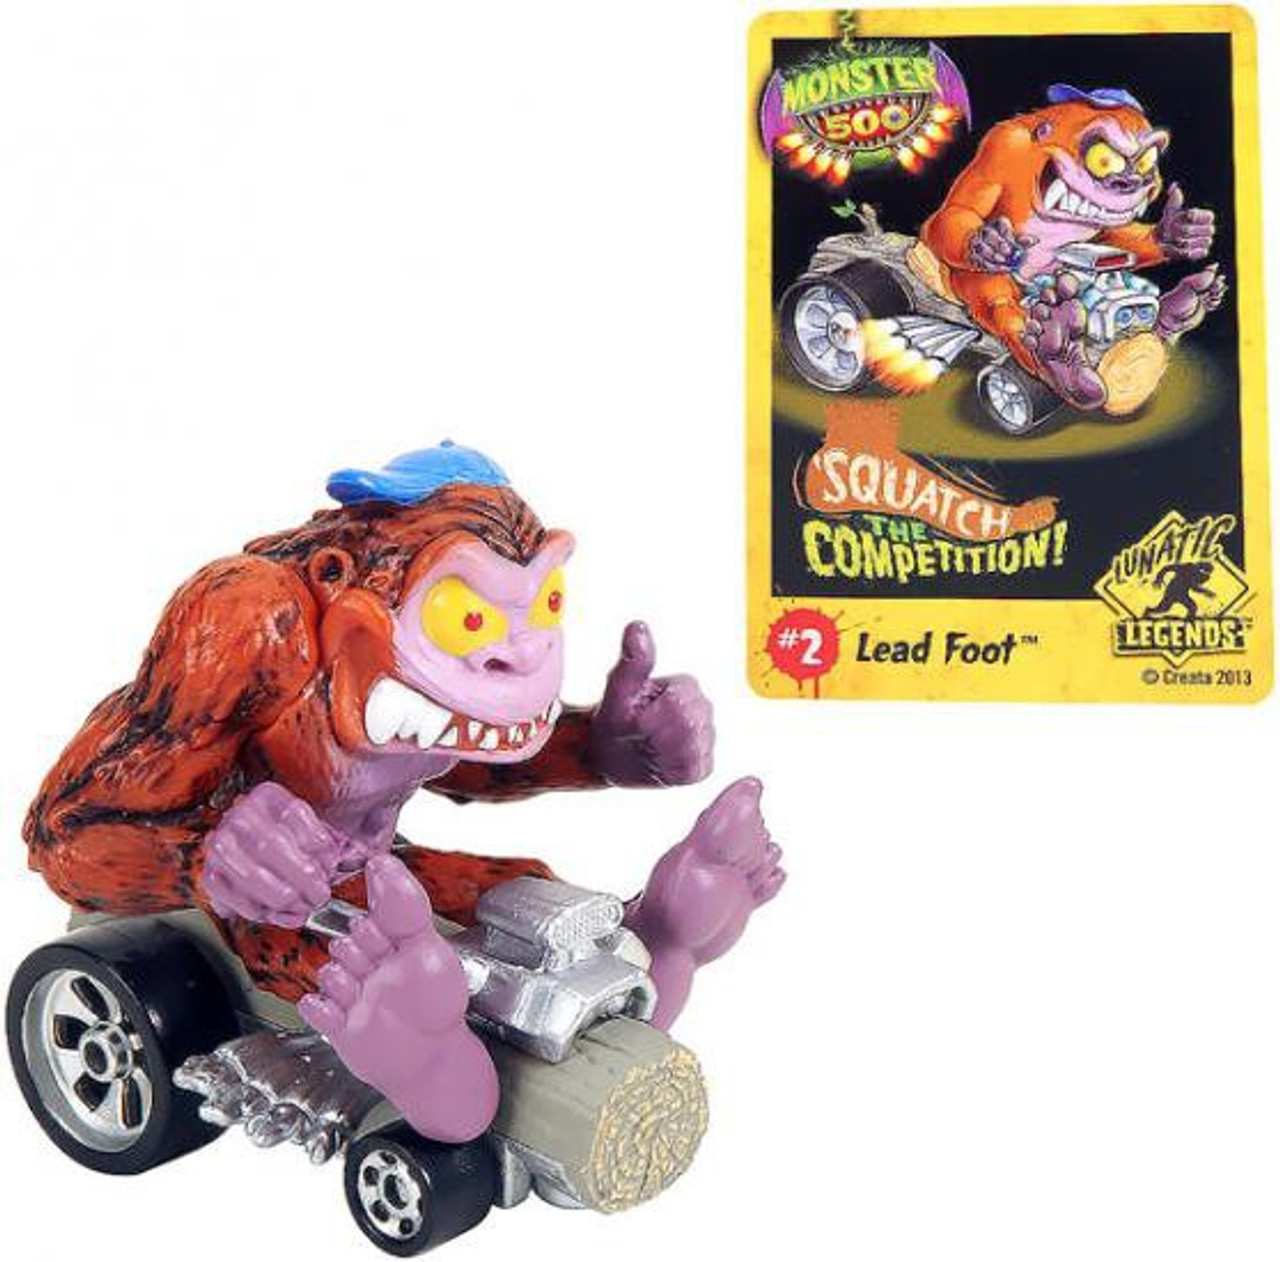 Monster 500 Small Car Lead Foot Vehicle Figure